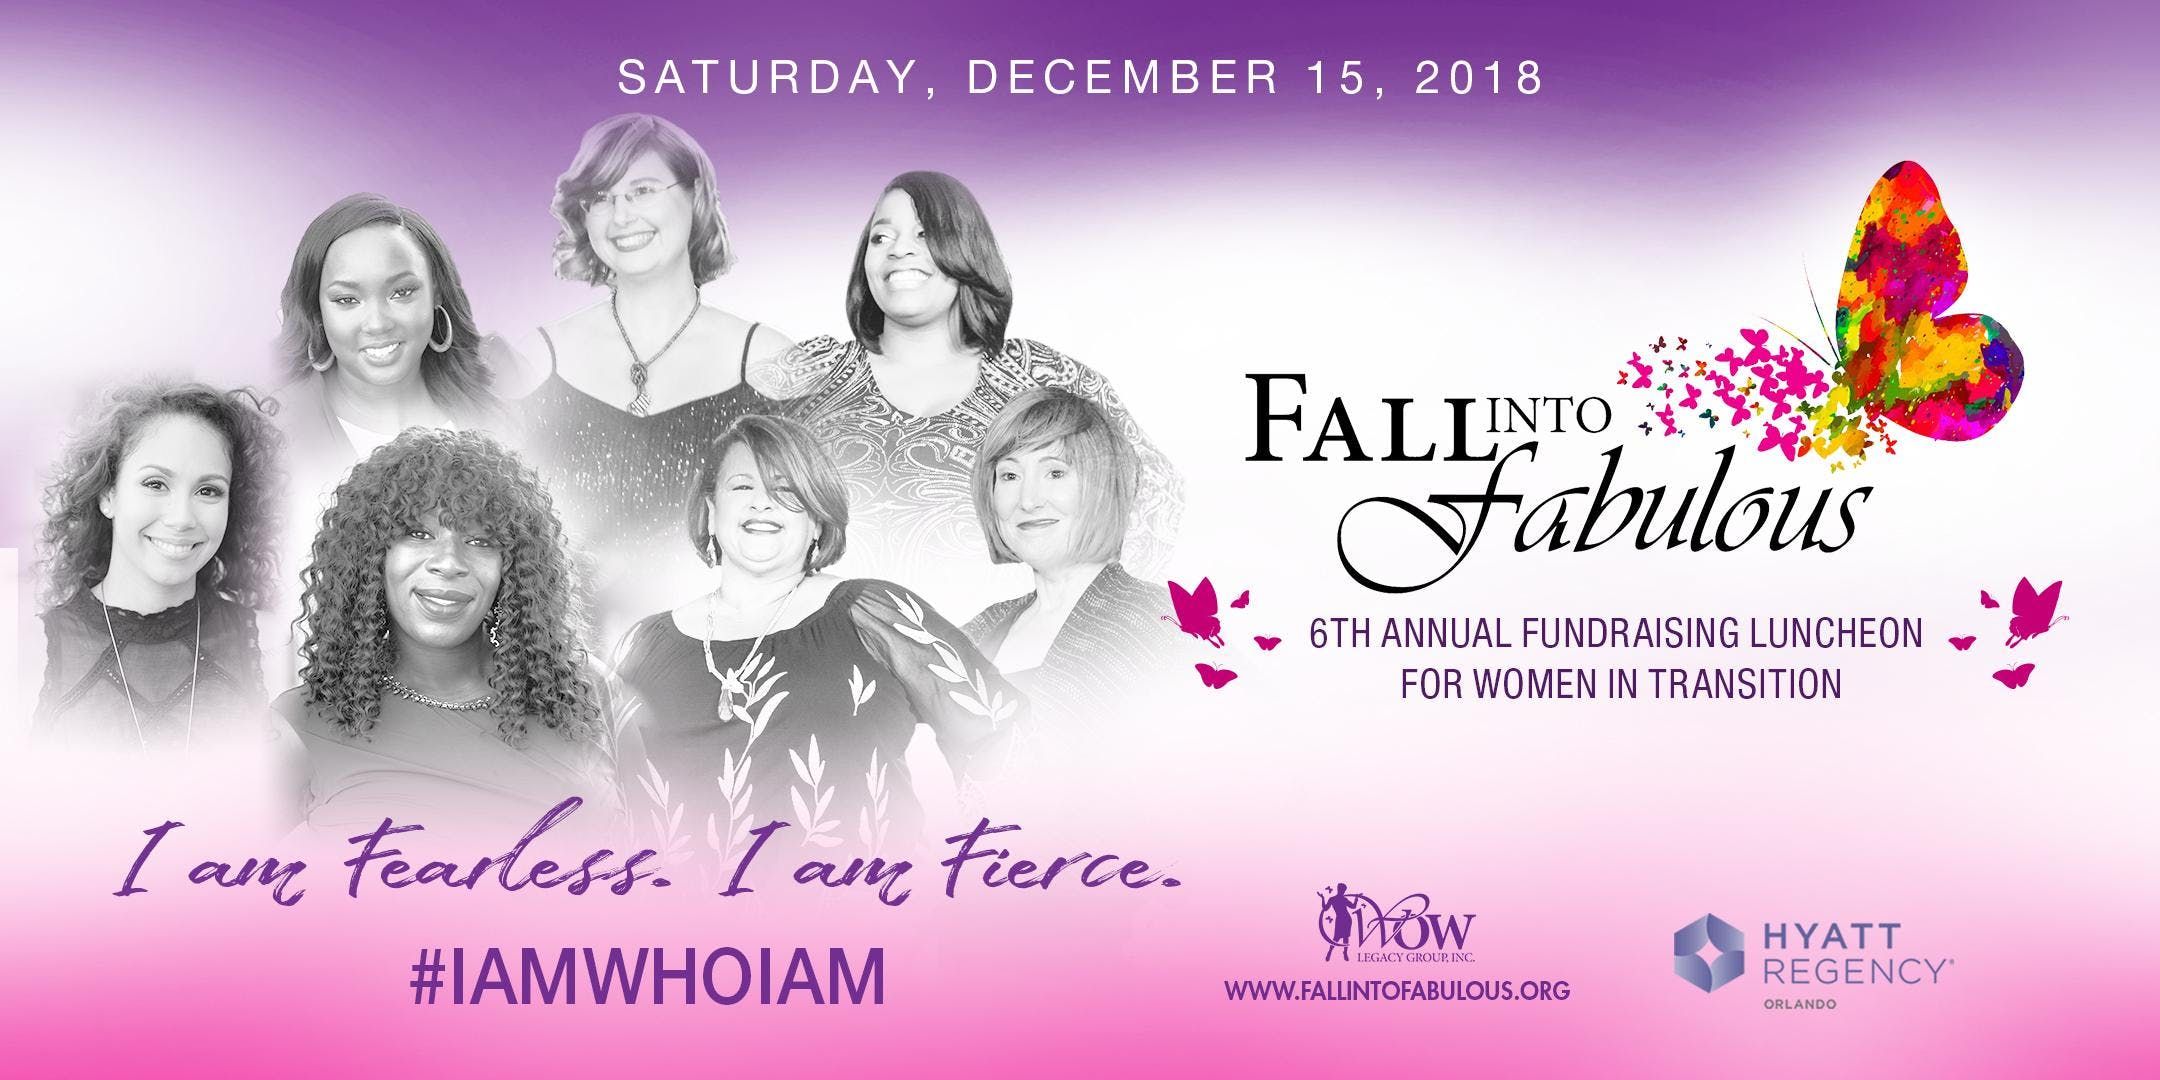 Fall into Fabulous Fundraising Luncheon 2018